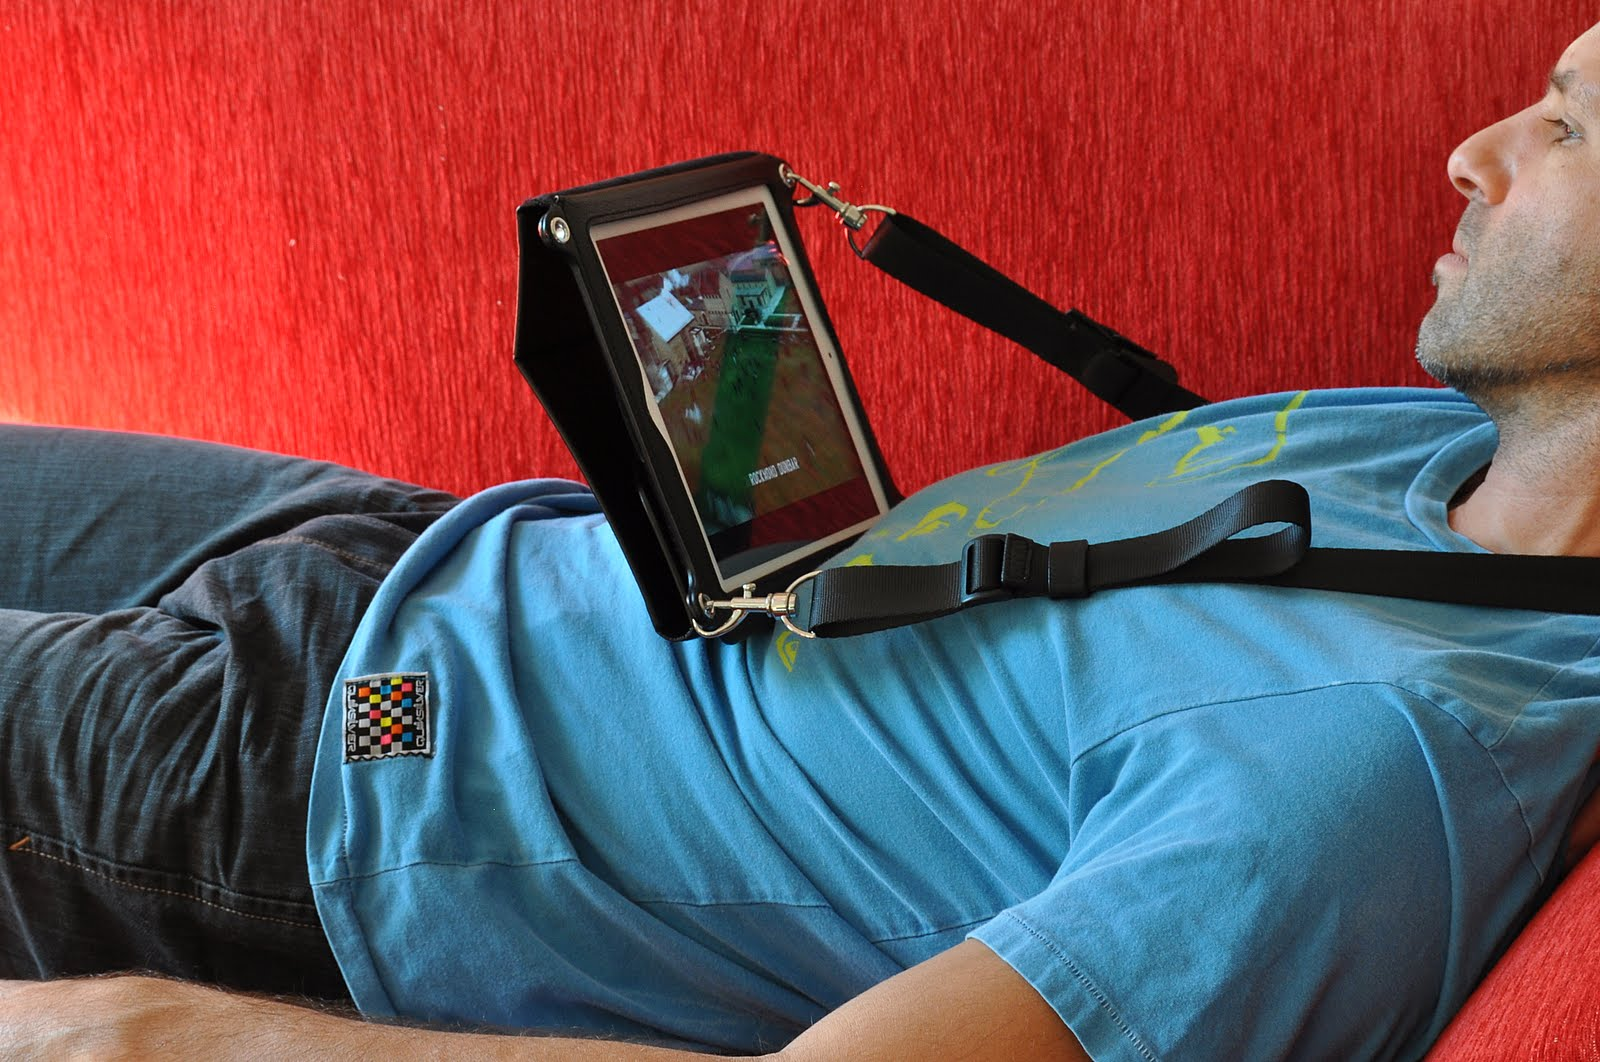 Use hands-free Across case to watch movies